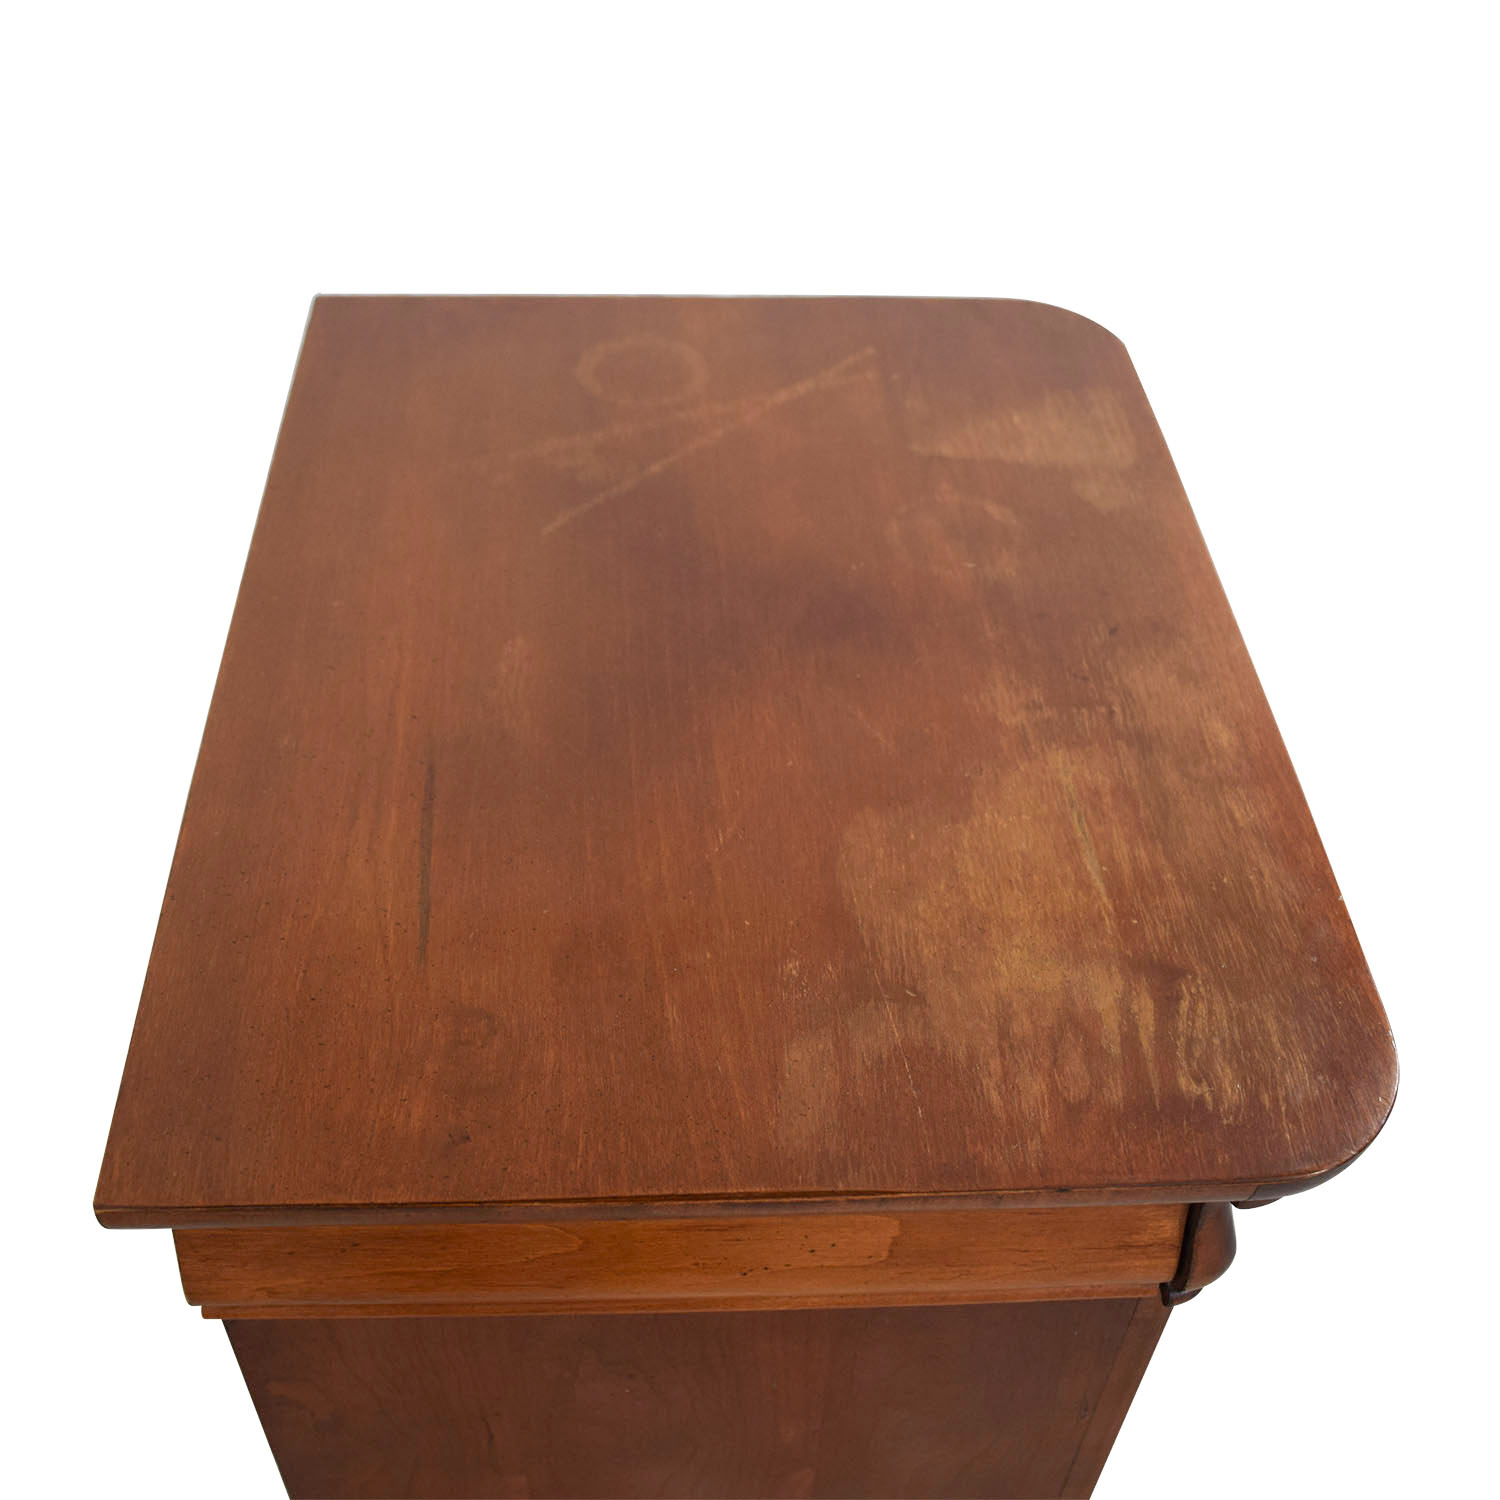 Antique Wood Single Drawer End Table for sale